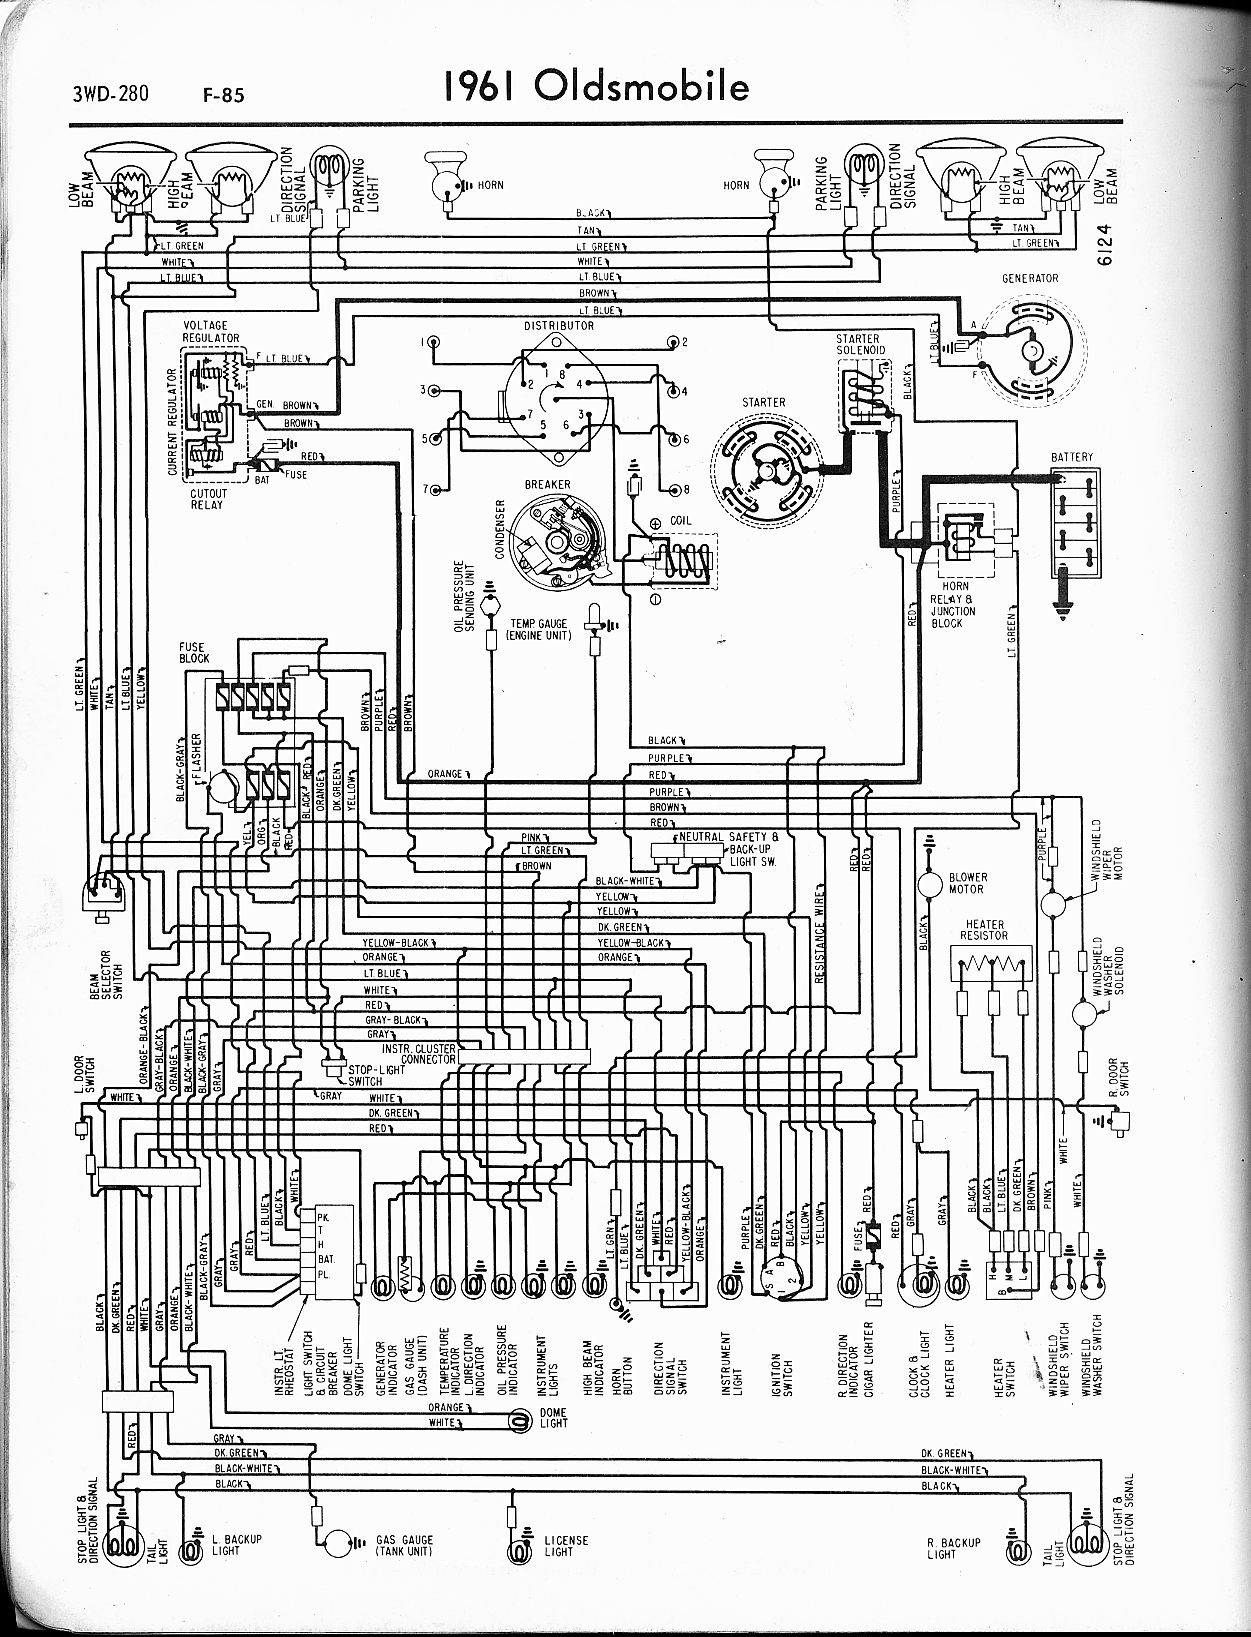 MWire5765 280 oldsmobile wiring diagrams the old car manual project installation wiring diagram for industry at n-0.co